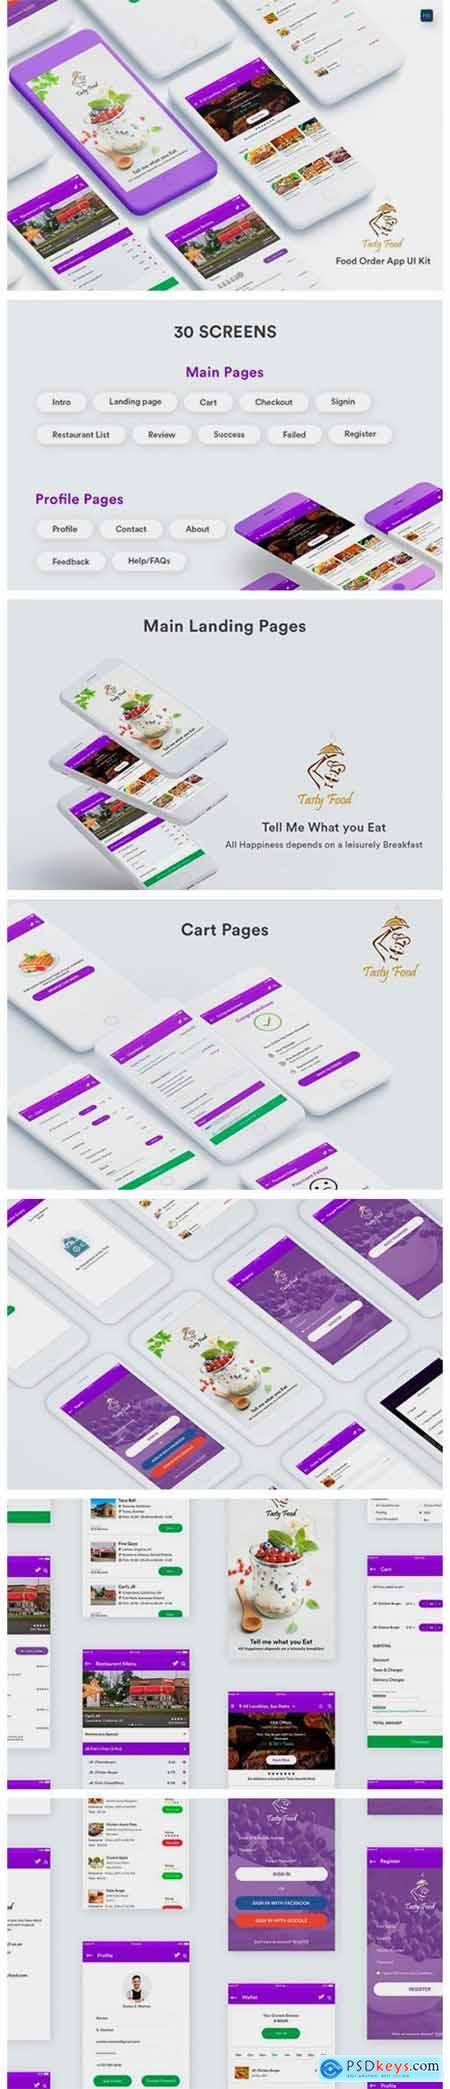 Online Food Order Mobile App UI Kit 9068977